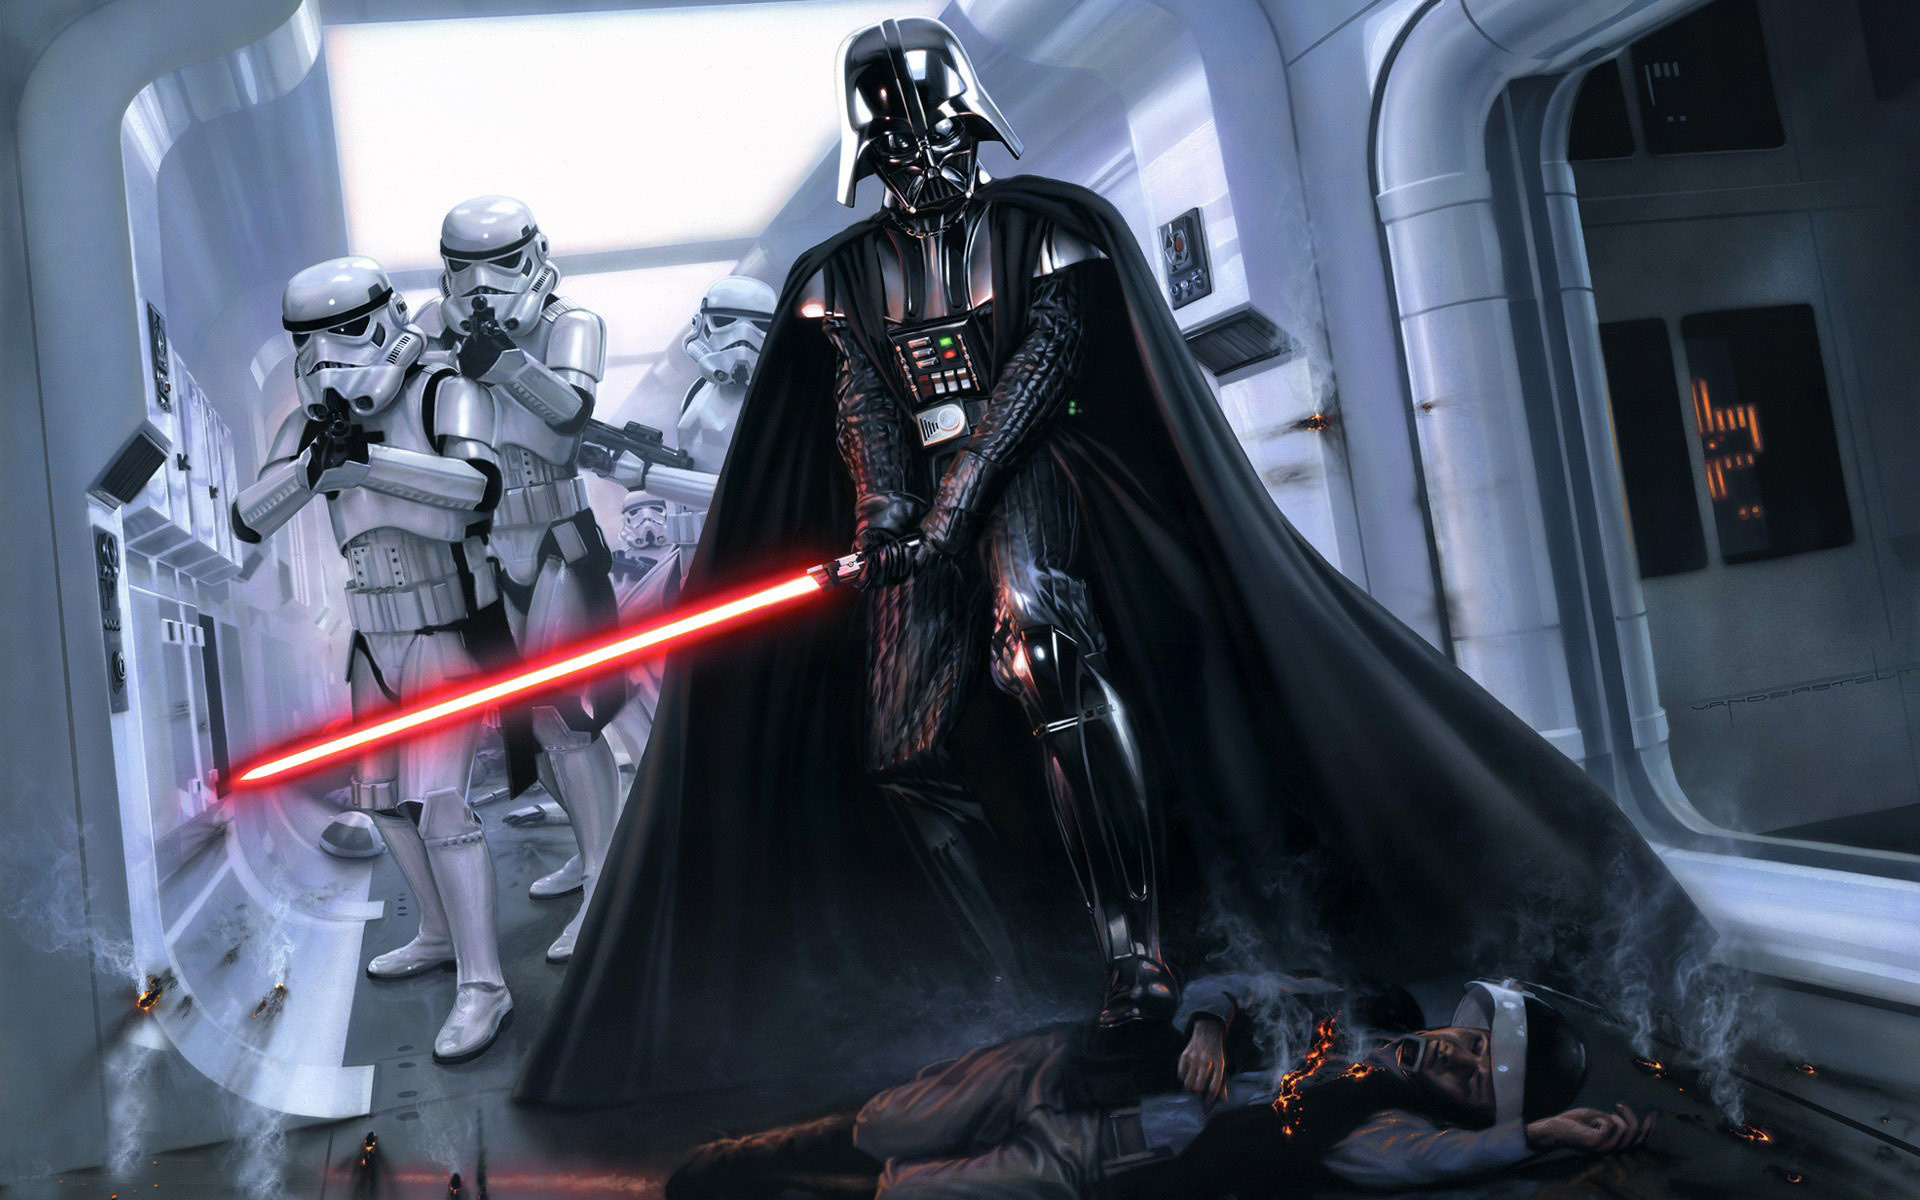 darth-vader-star-wars-movie-hd-wallpaper